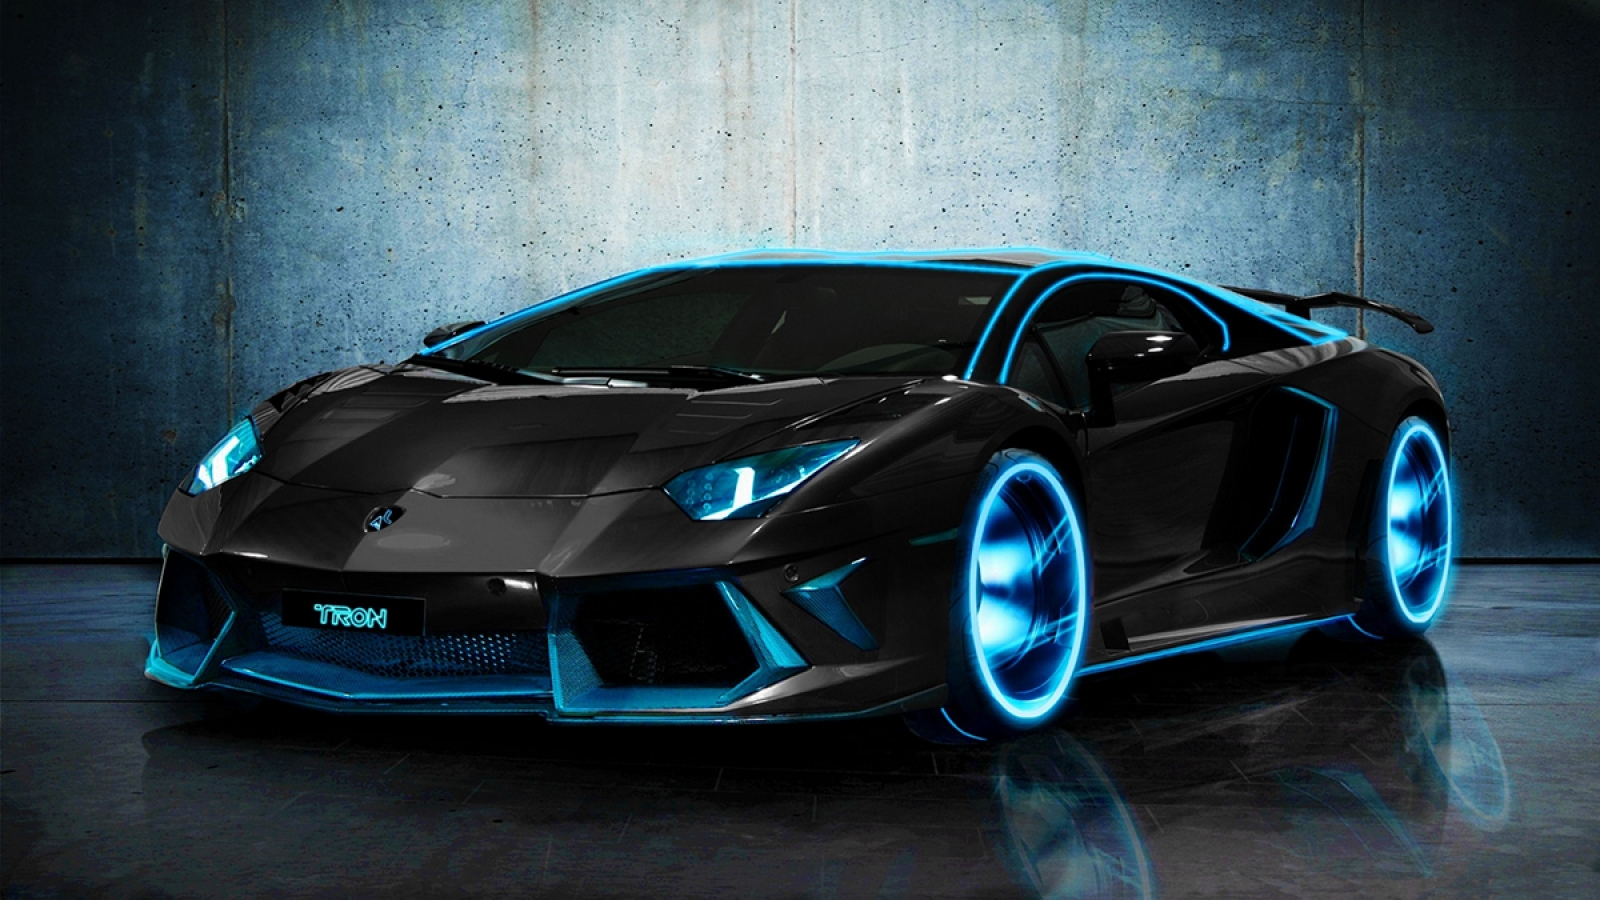 Tron Style Lamborghini Aventador 4k Hd Wallpapers Hd Backgrounds